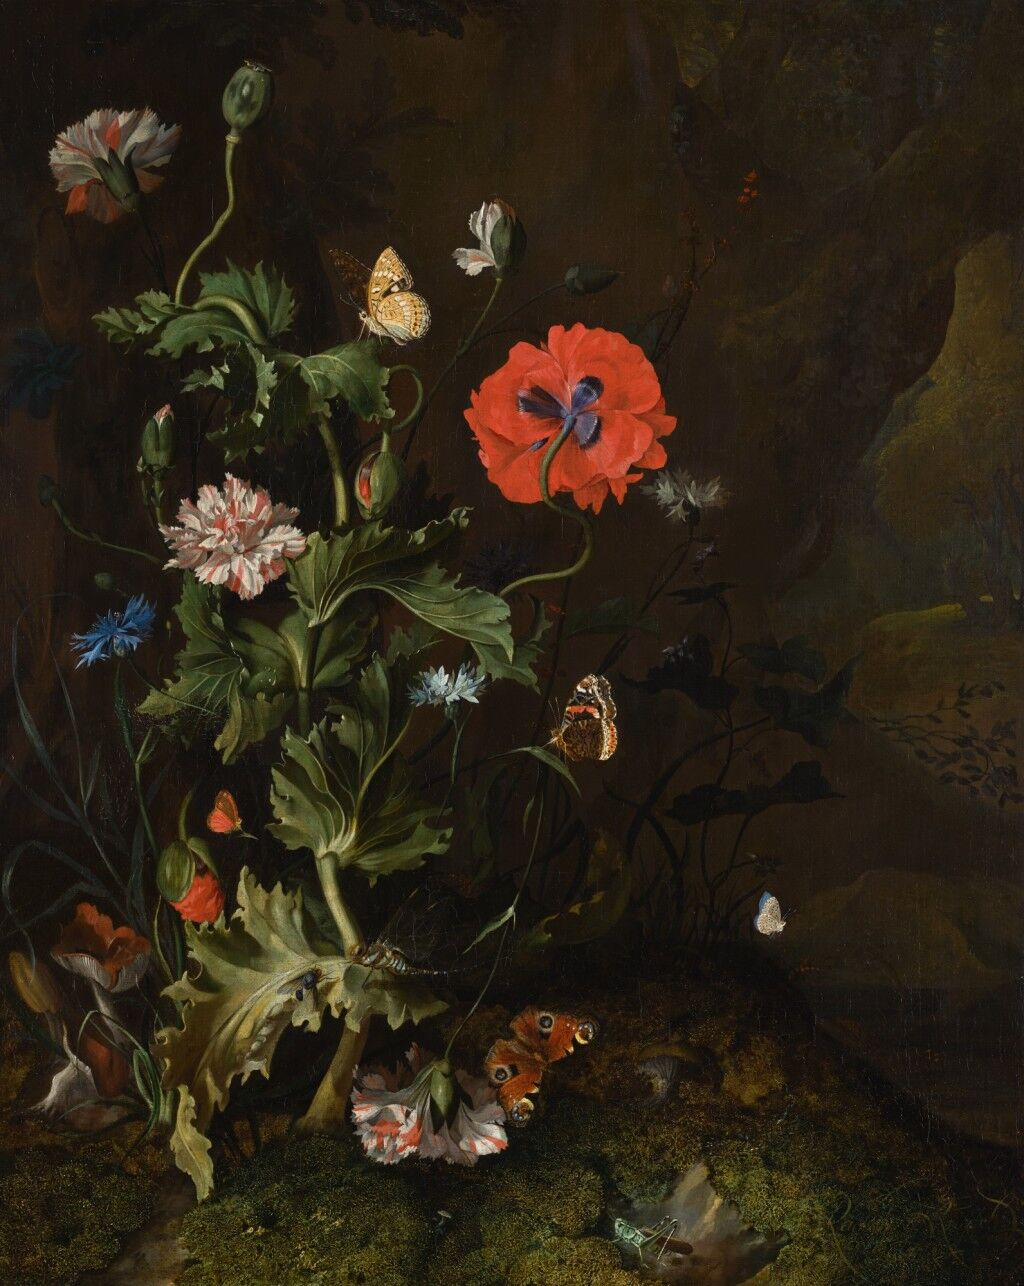 Rachel Ruysch, Still life of a thistle between carnations and cornflowers on a mossy forest floor, with butterflies and a cricket, 1683. Image via Wikimedia Commons.